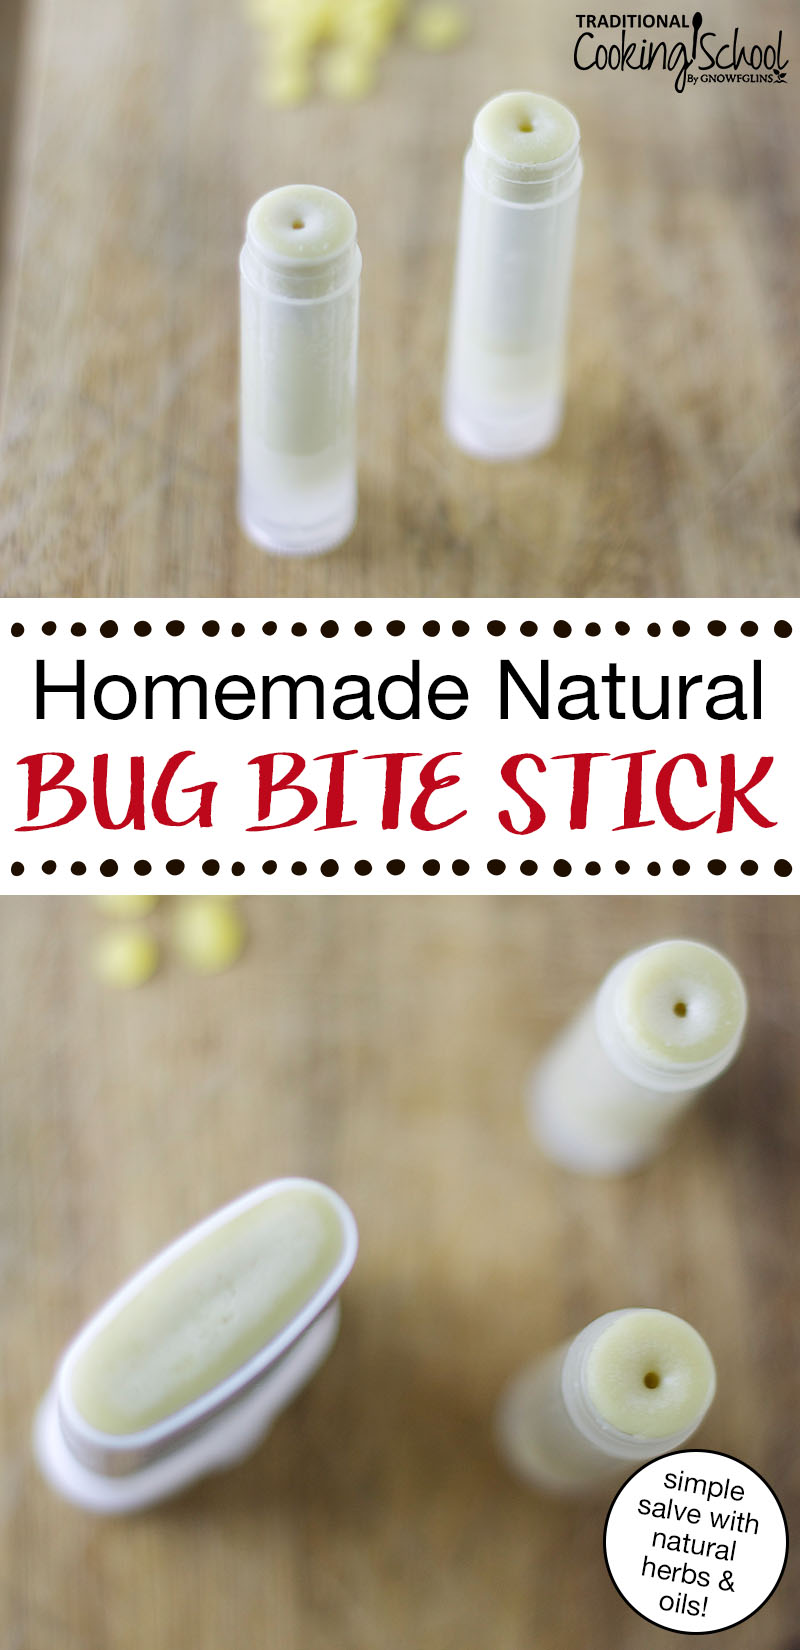 Homemade & Natural Bug Bite Stick | Summer comes hand-in-hand with bug bites. Let me introduce the 'bug bite stick' -- a chapstick tube containing a simple salve made from plantain, echinacea, and lavender. I've made this salve for a few years now, and it really works to relieve the itch! | TraditionalCookingSchool.com